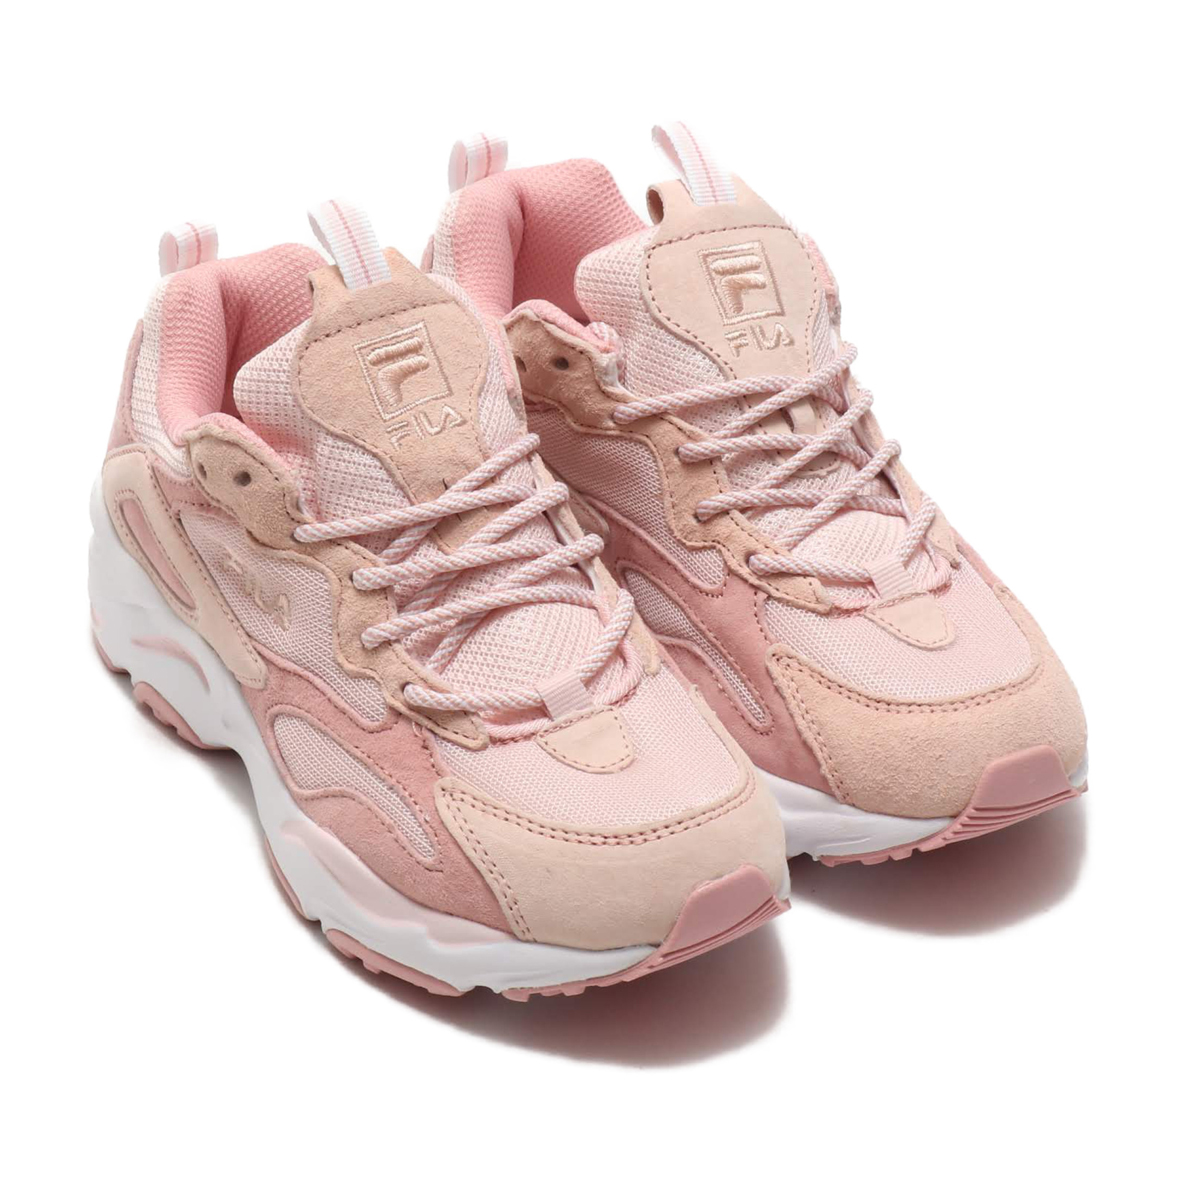 FILA RAY TRACER WOMENS (Fila rate racer women) LIGHT PINK 19FW I